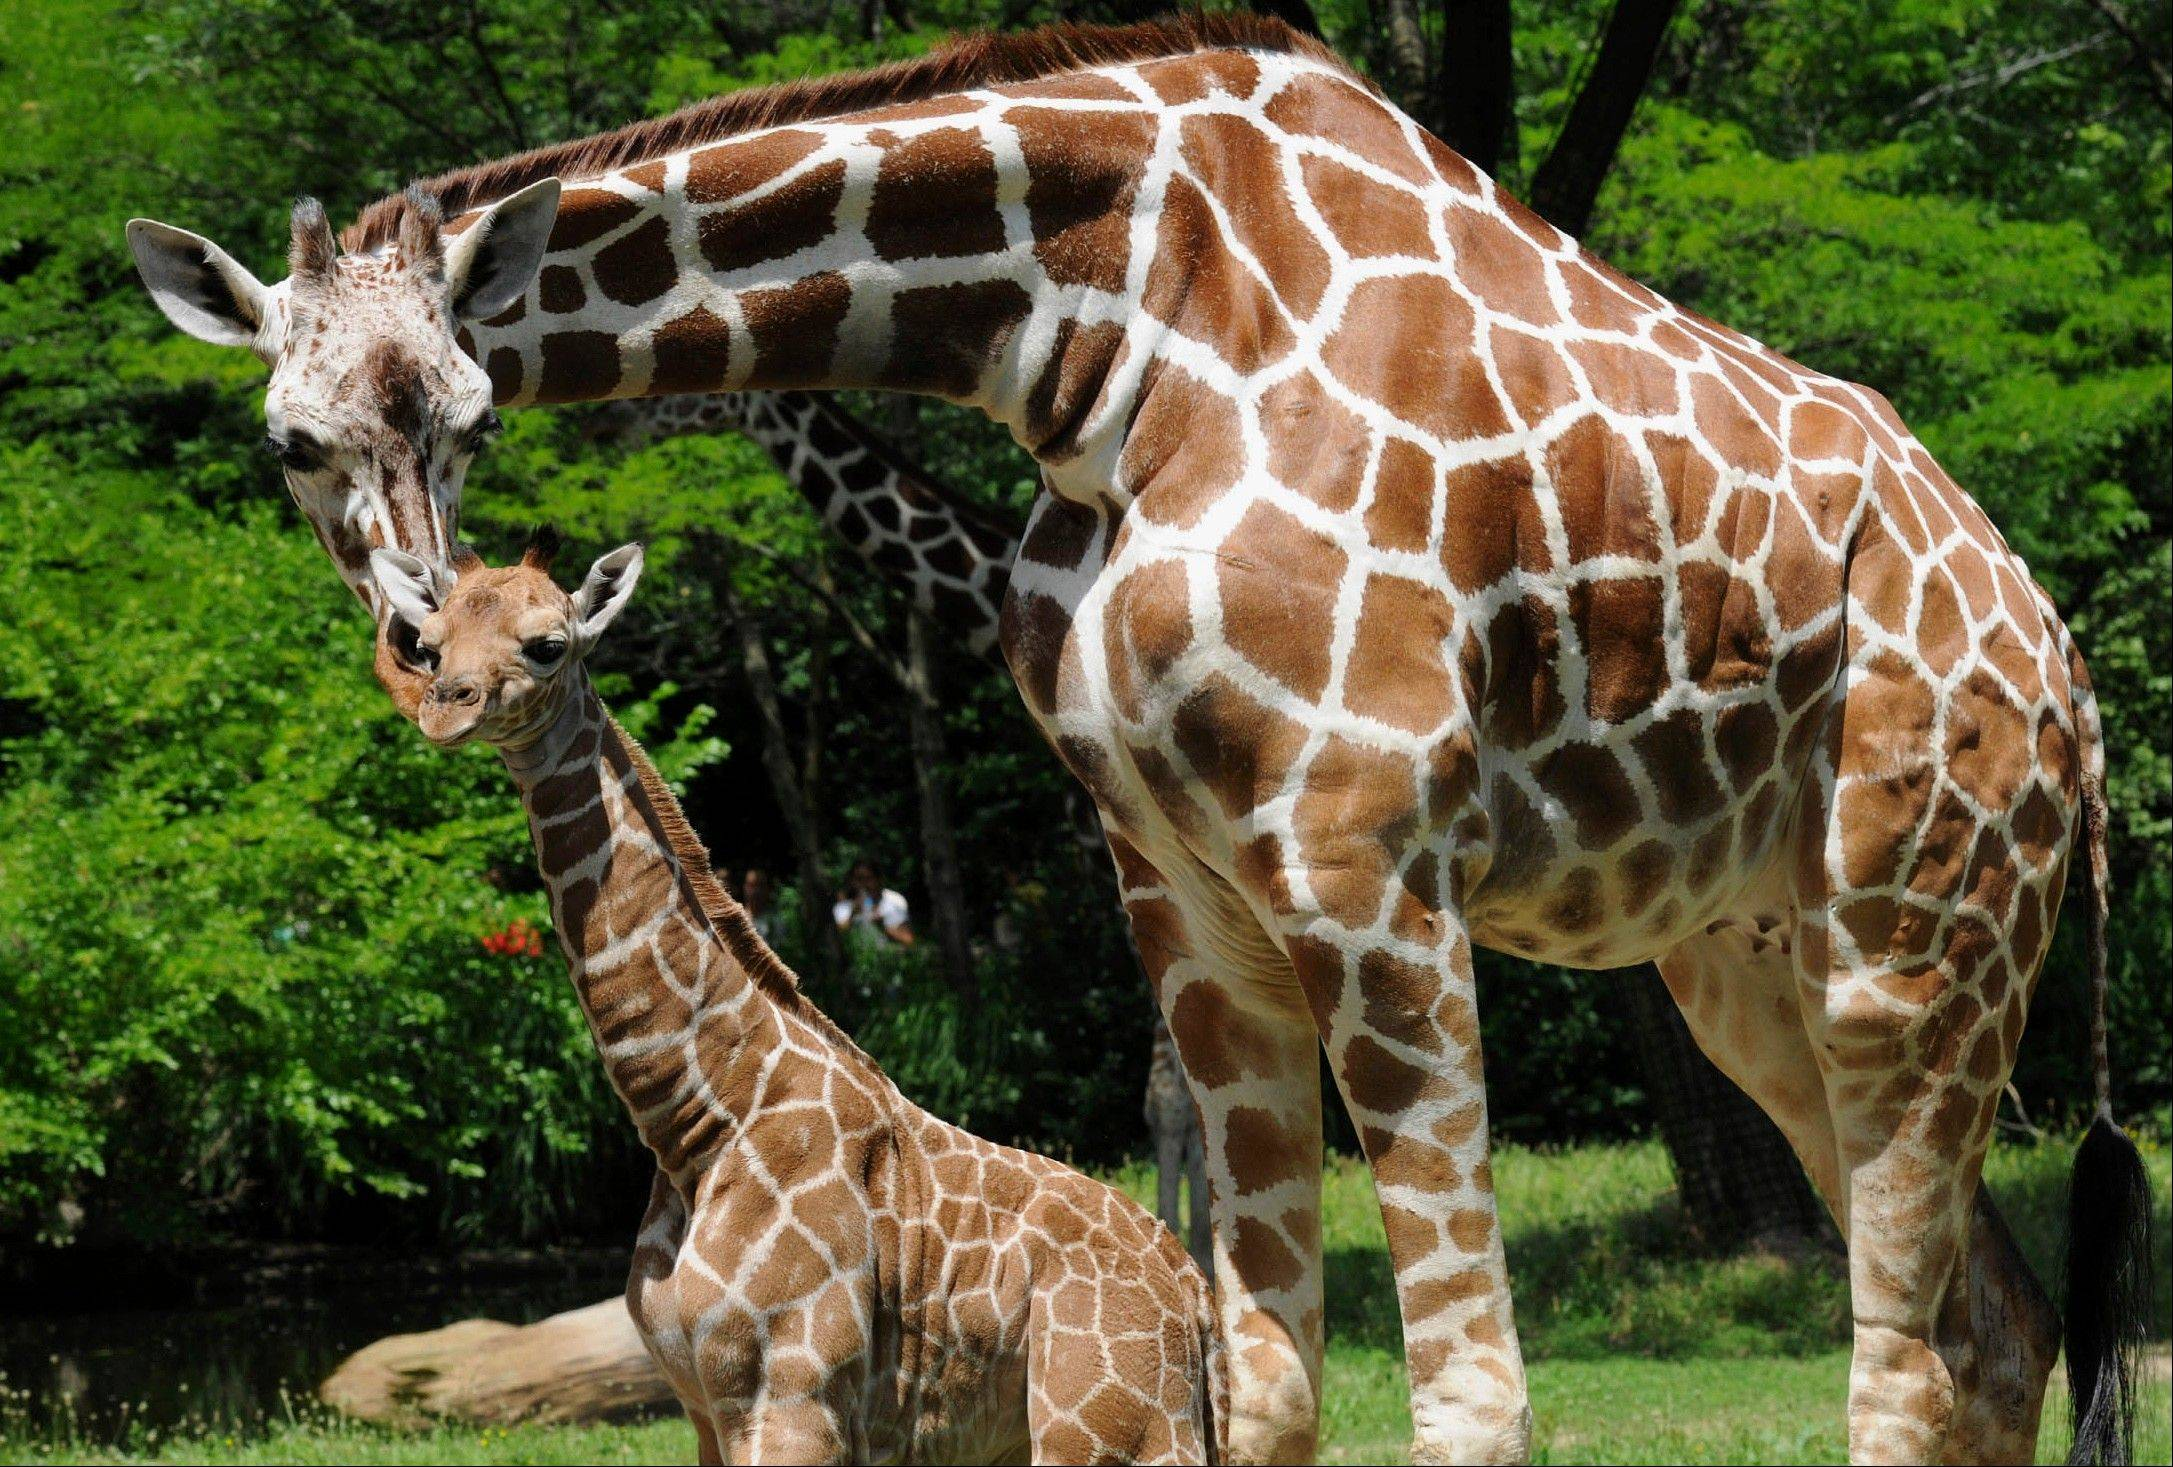 In this June 27, 2013 photo provided by the Chicago Zoological Society, a male giraffe, born June 21, gets the attention of his mother, 7 1/2-year-old Jasiri, at the Brookfield Zoo�s Habitat Africa! The Savannah exhibit. The male calf is her first birth � and experts say he could grow to 18-feet-tall. He�s the 59th giraffe born at the zoo.